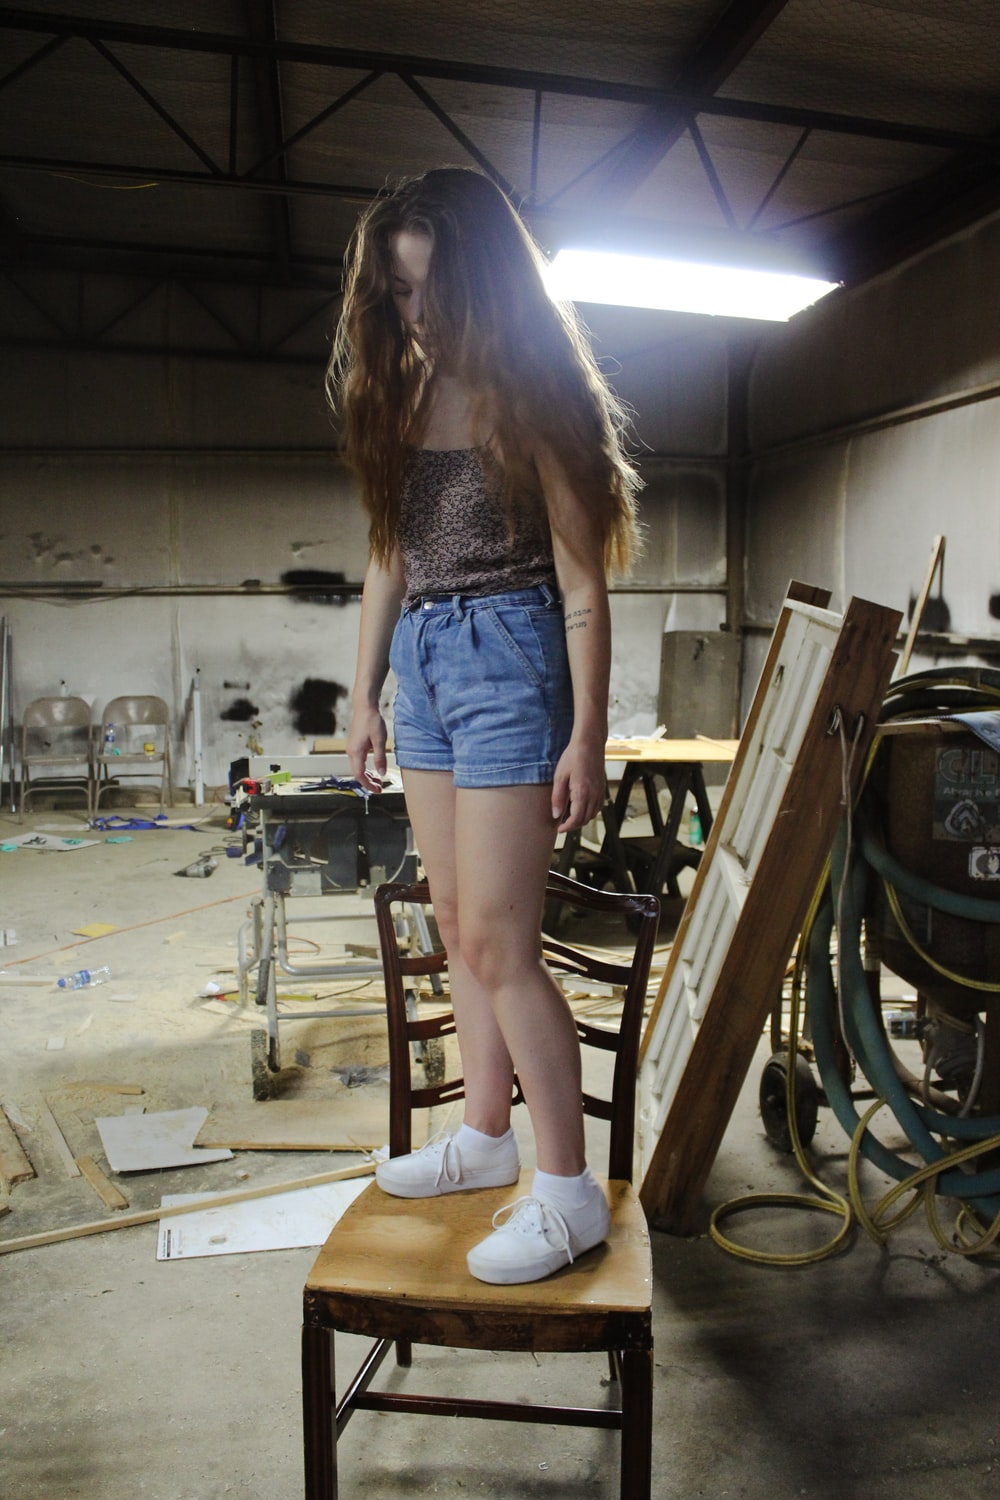 girl wearing blue shorts on brown wooden chair